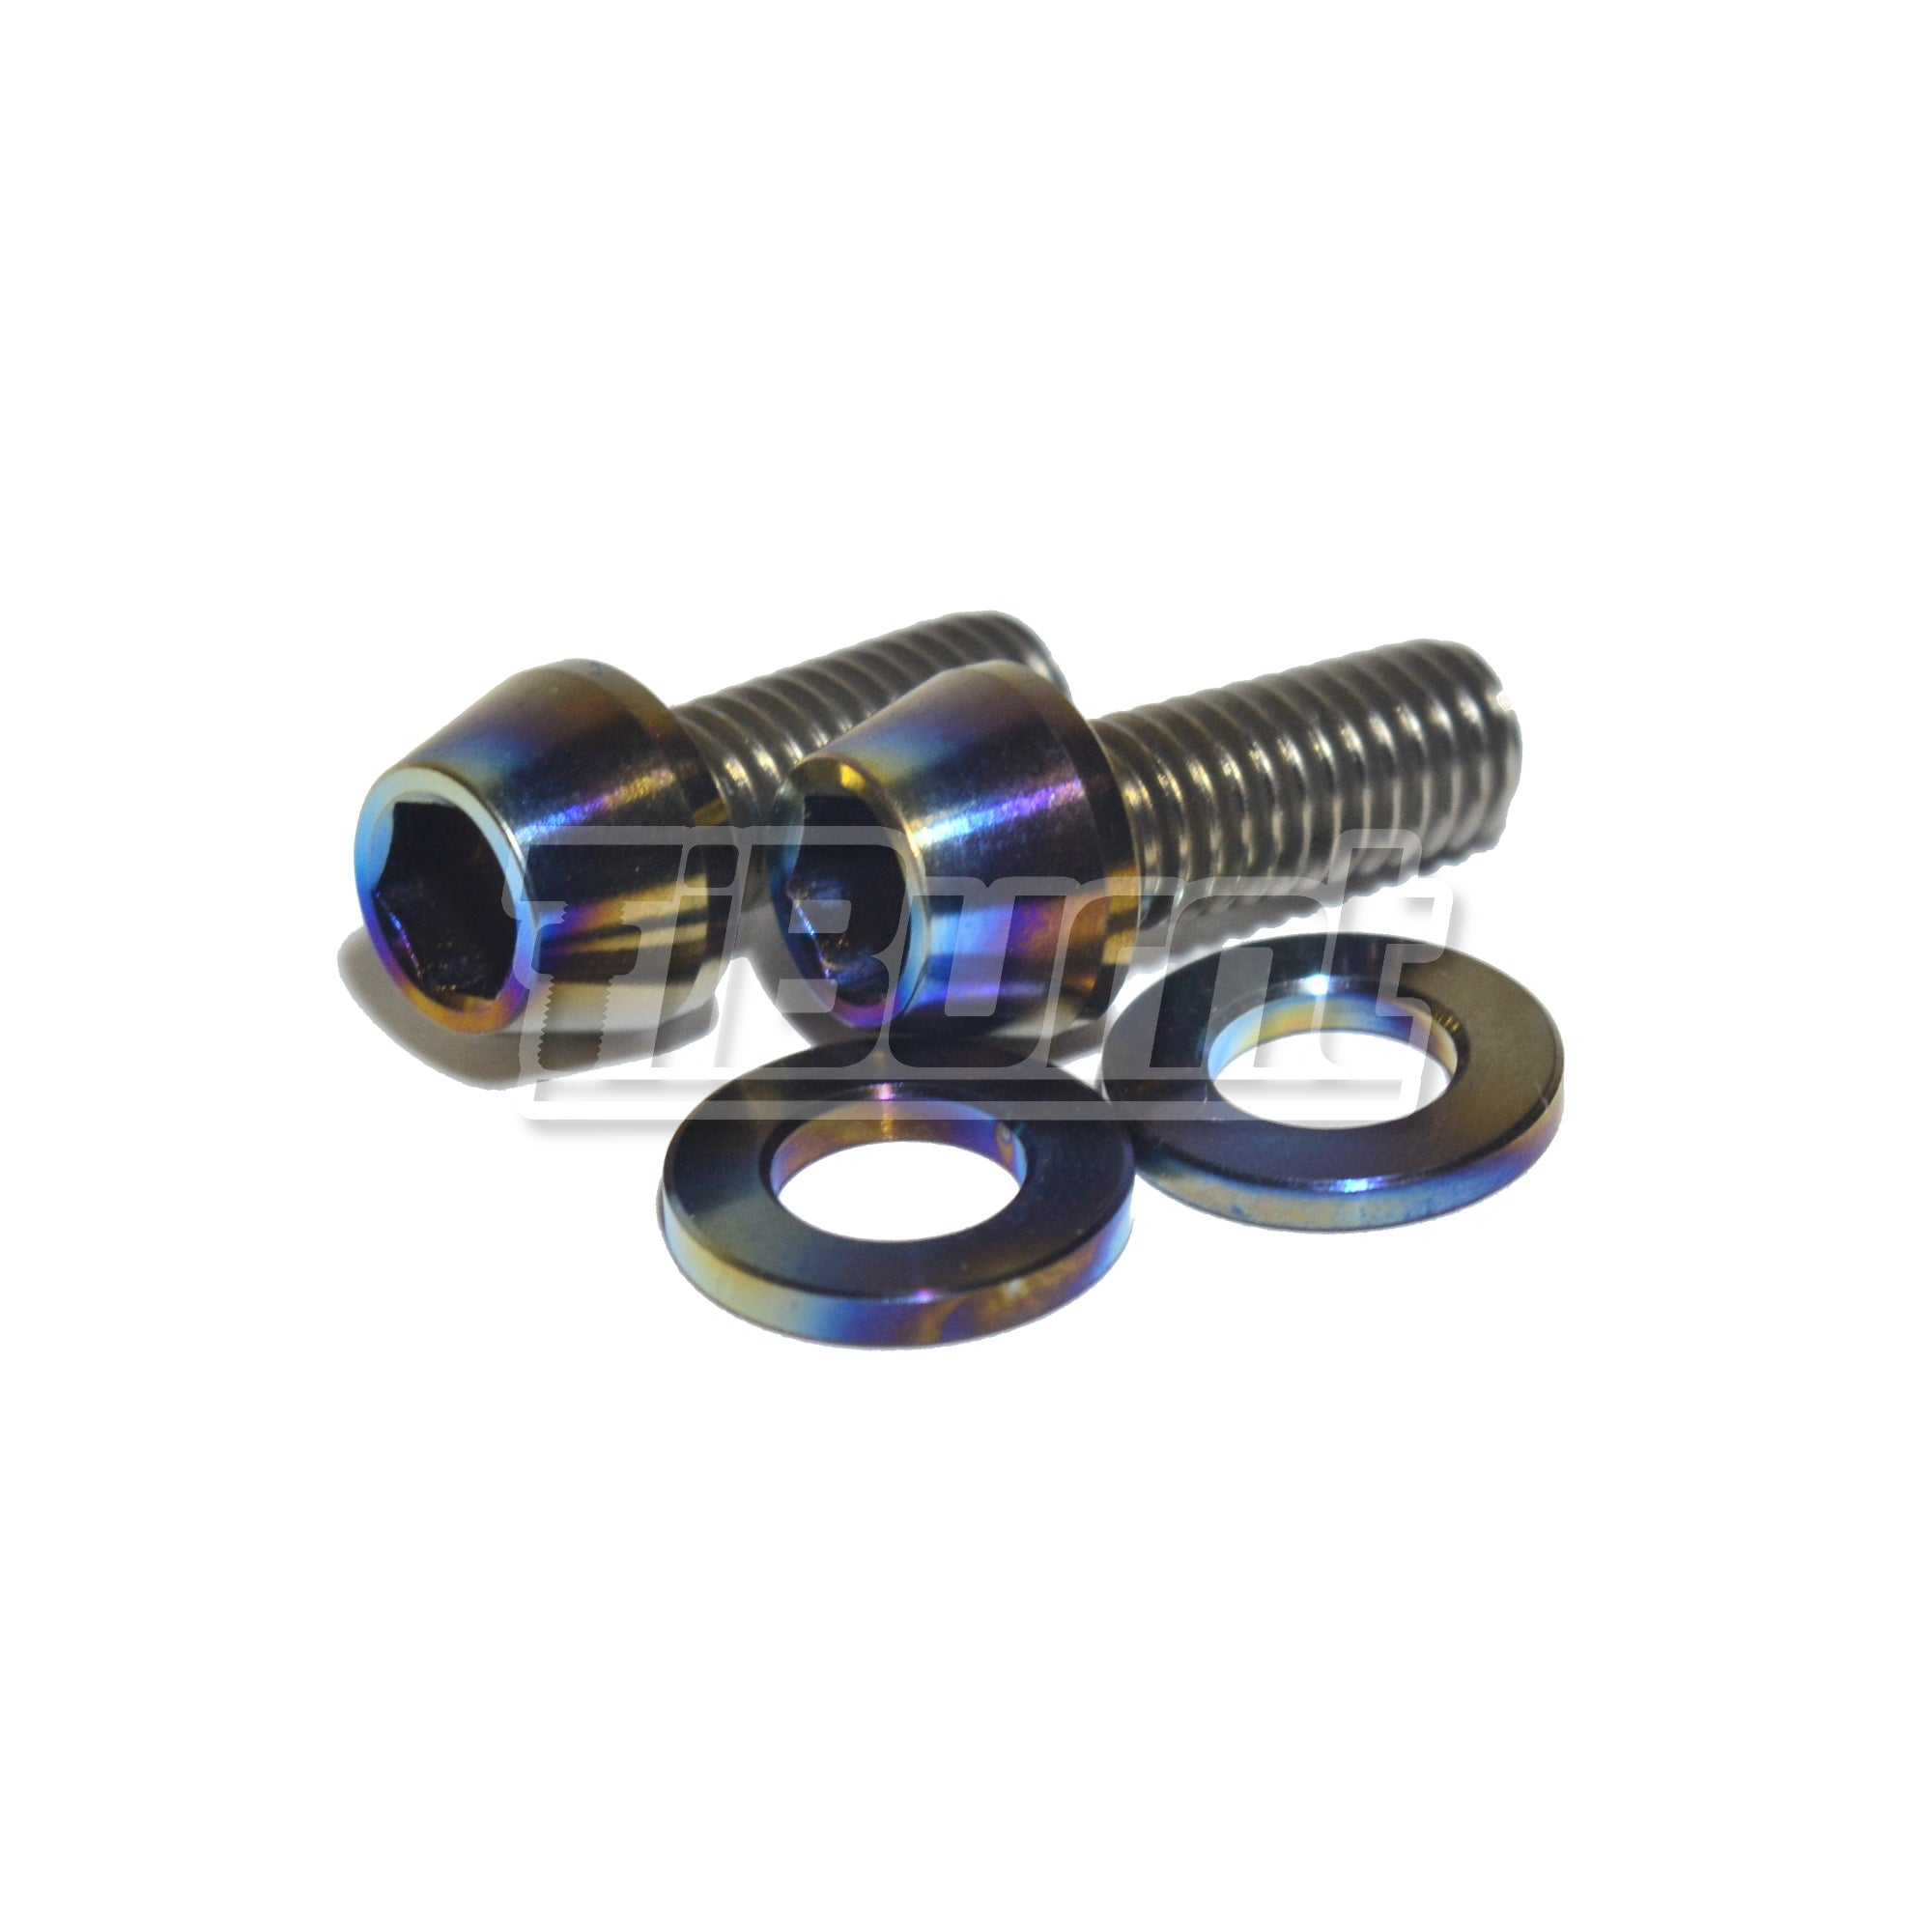 tiburnt tiburnt titanium license plate screw kit. Black Bedroom Furniture Sets. Home Design Ideas